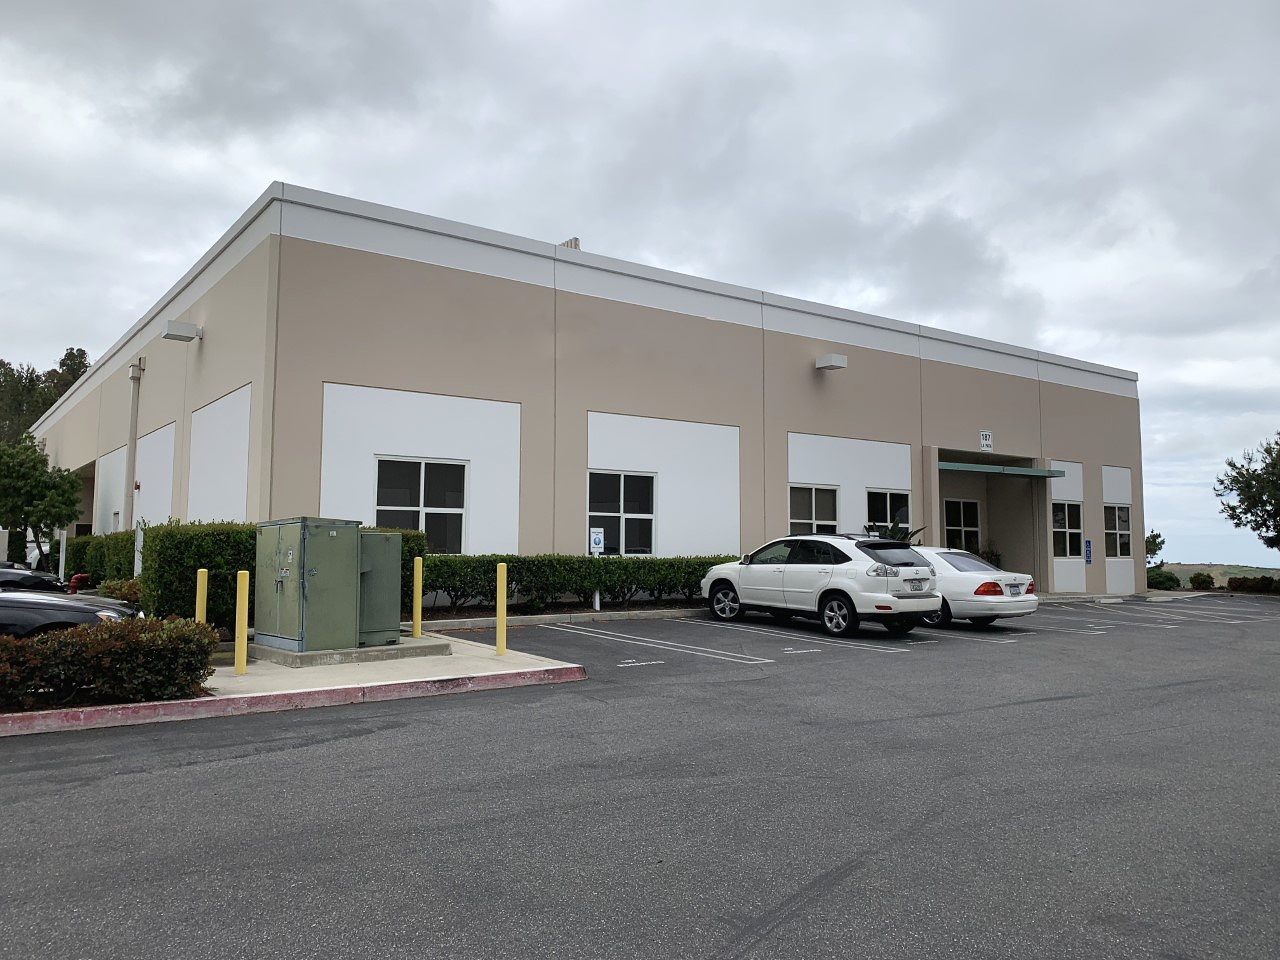 187 Avenida La Pata • San Clemente • 7,144sf Industrial Building • 6,644sf Office • 500sf Warehouse • For Sale